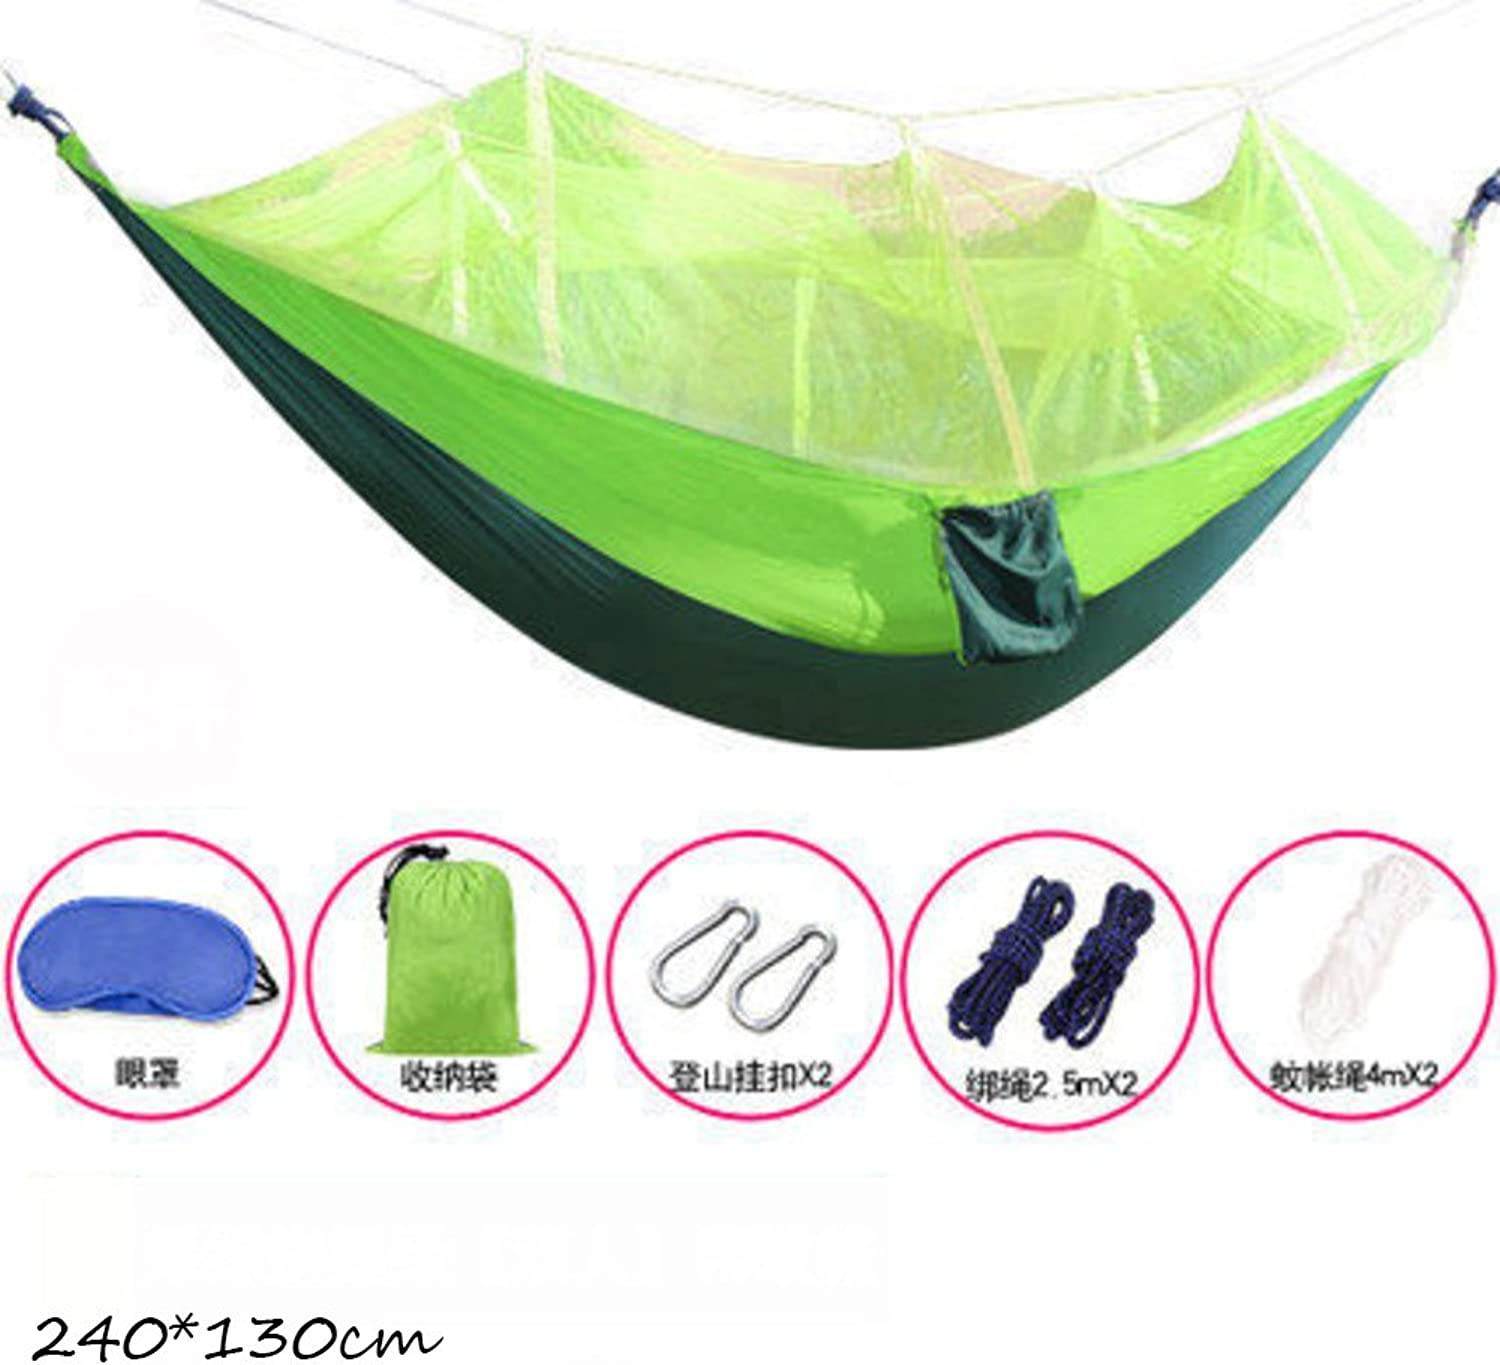 L&J Hammock Mosquito Net,Outdoor Swing Bed Lightweight Breathable Portable Parachute Nylon Hammock Camping Backpacking Travel Hiking